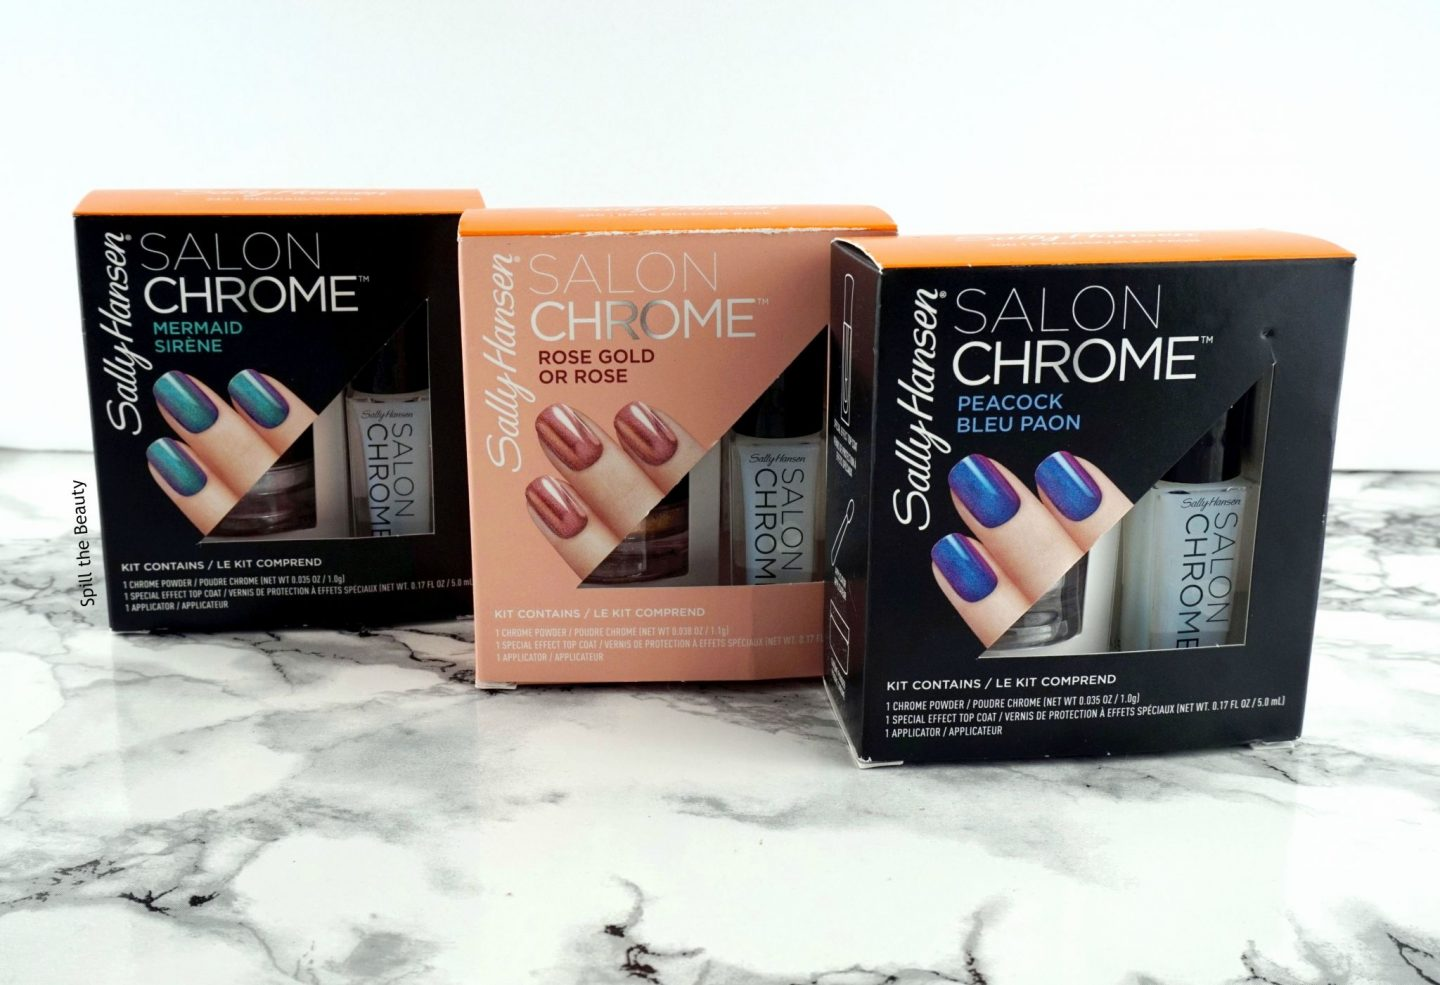 Sally Hansen Chrome Kit in 'Mermaid', 'Rose Gold', and 'Peacock' – Review and Swatches